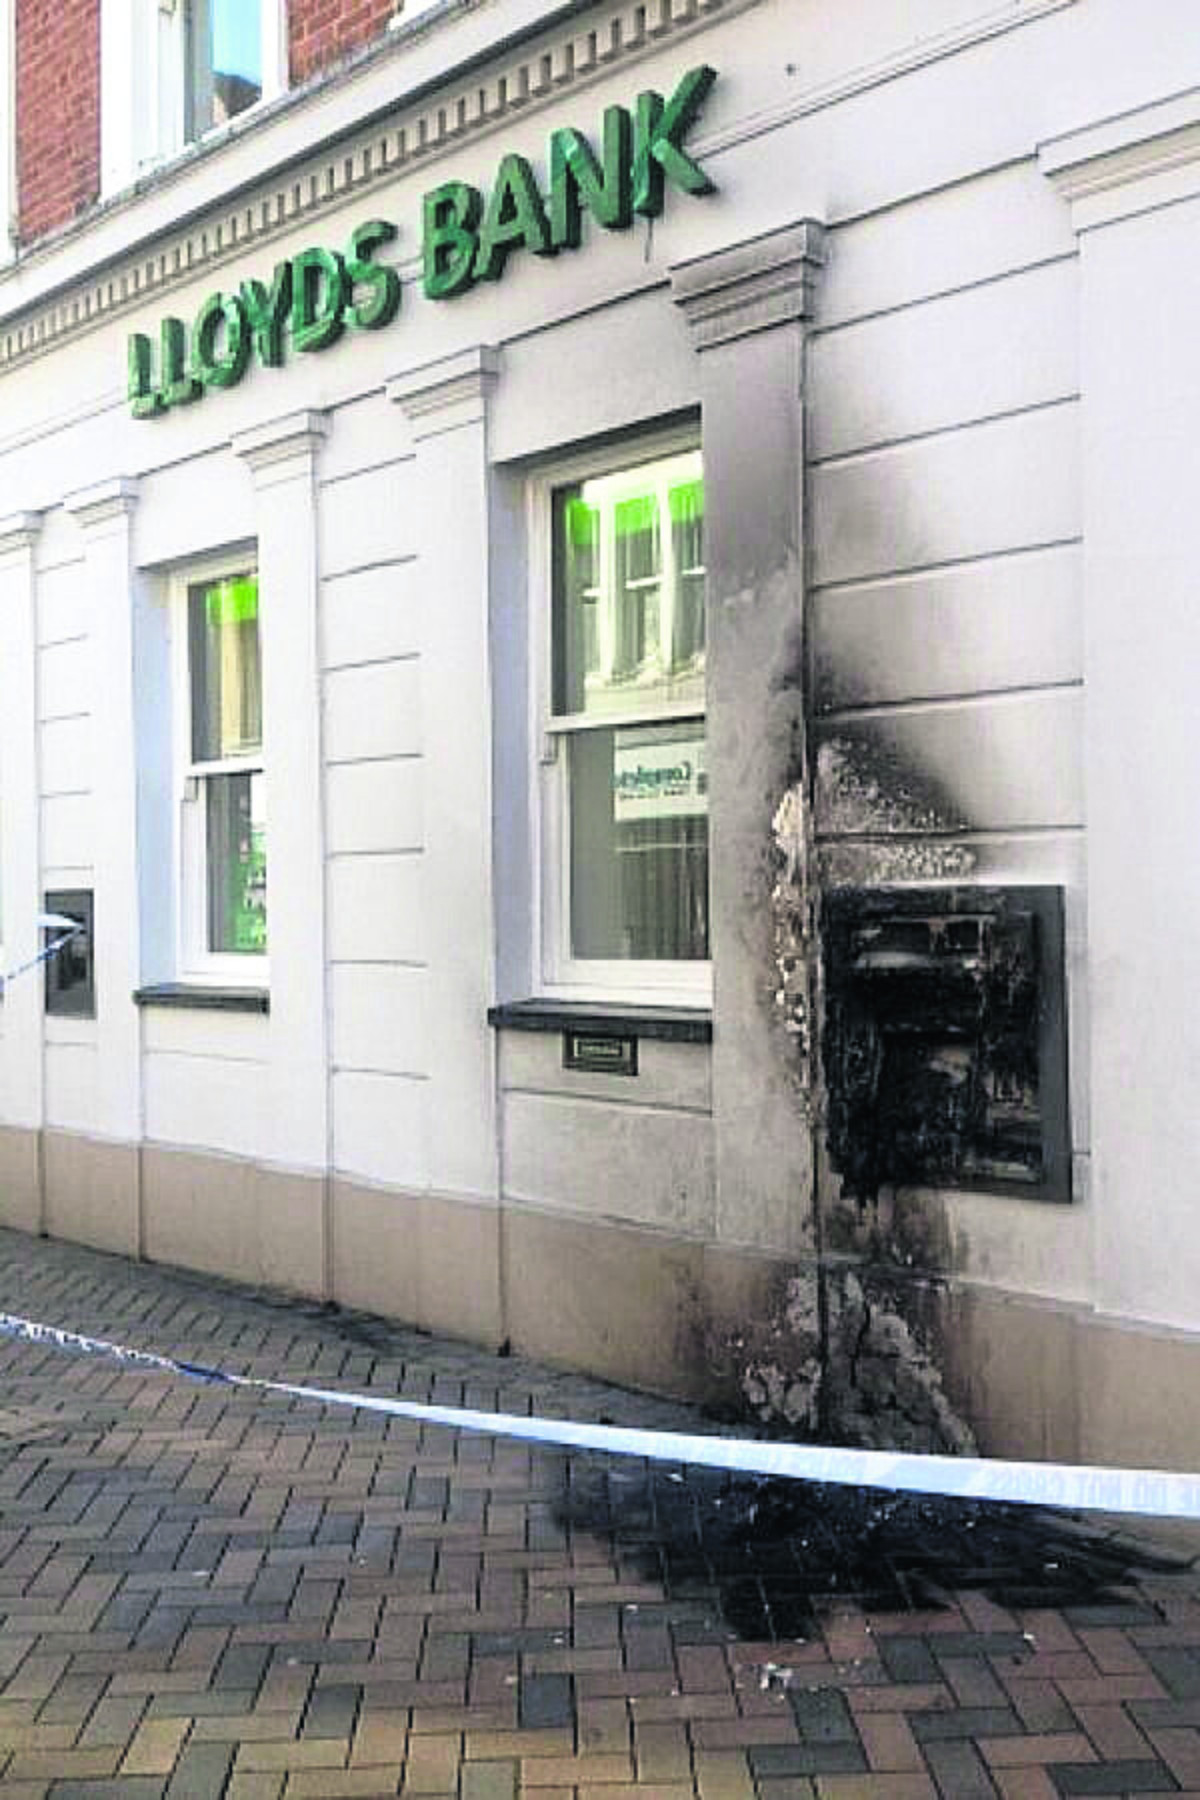 The Lloyds Bank branch targeted by the arsonist